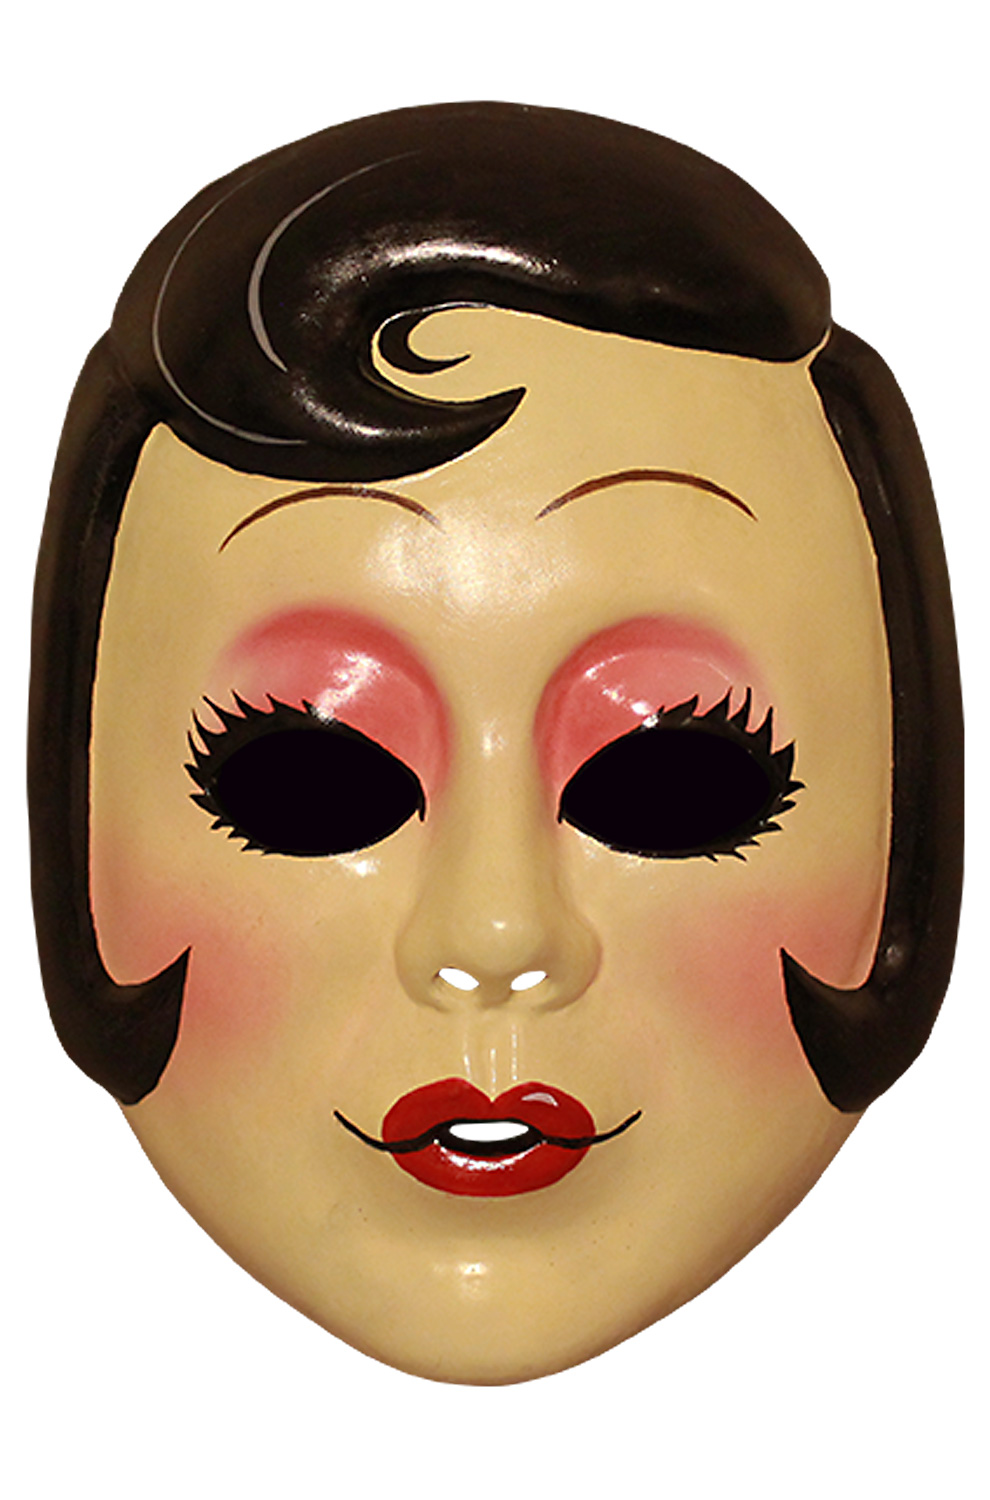 the strangers pin up girl vacuform mask - purecostumes